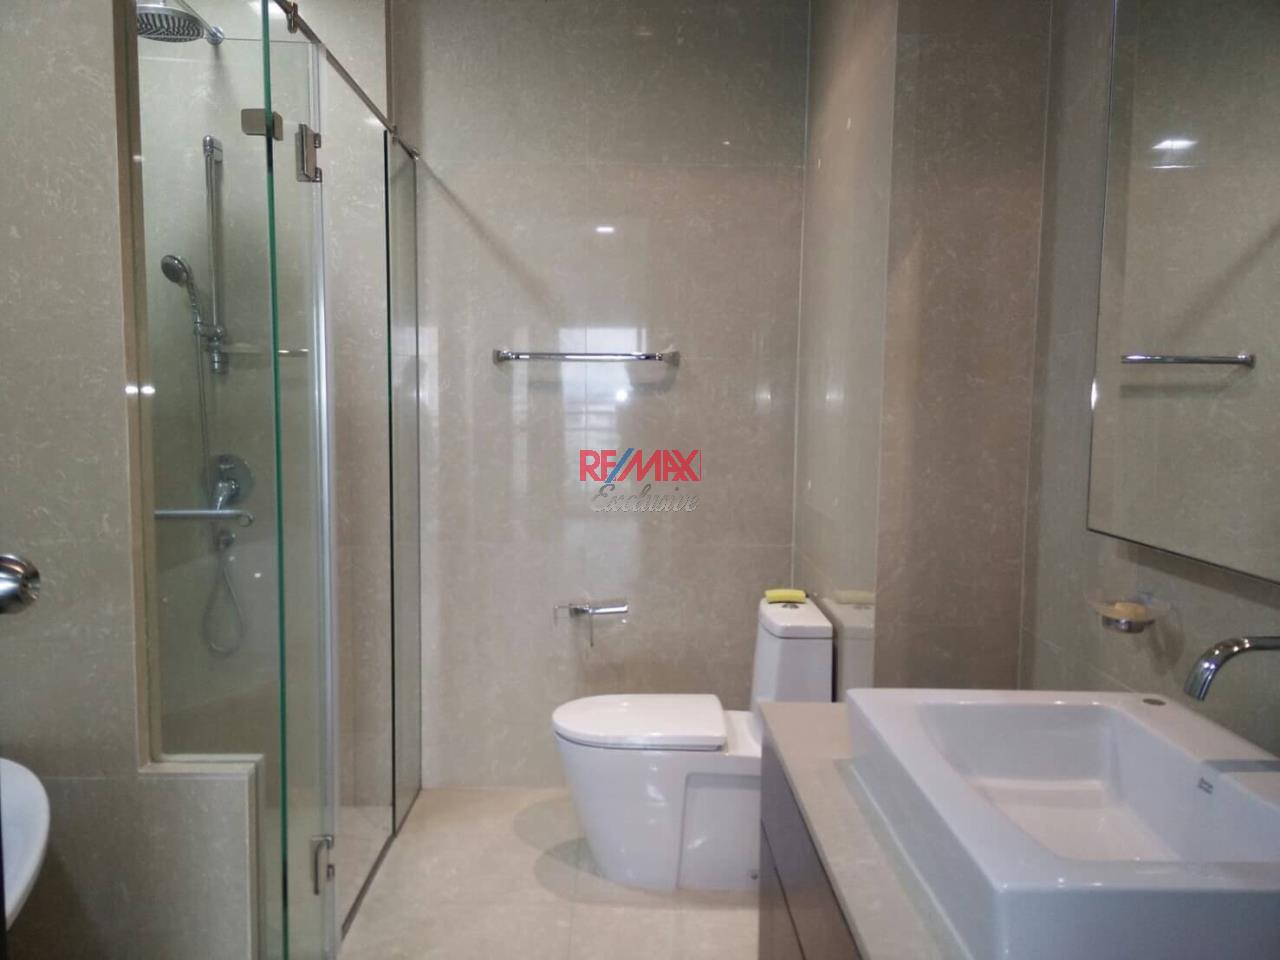 RE/MAX Exclusive Agency's The Madison Condo 2 Bedrooms 139 Sqm., For Sale With Tenant 24,000 000 THB!!  15